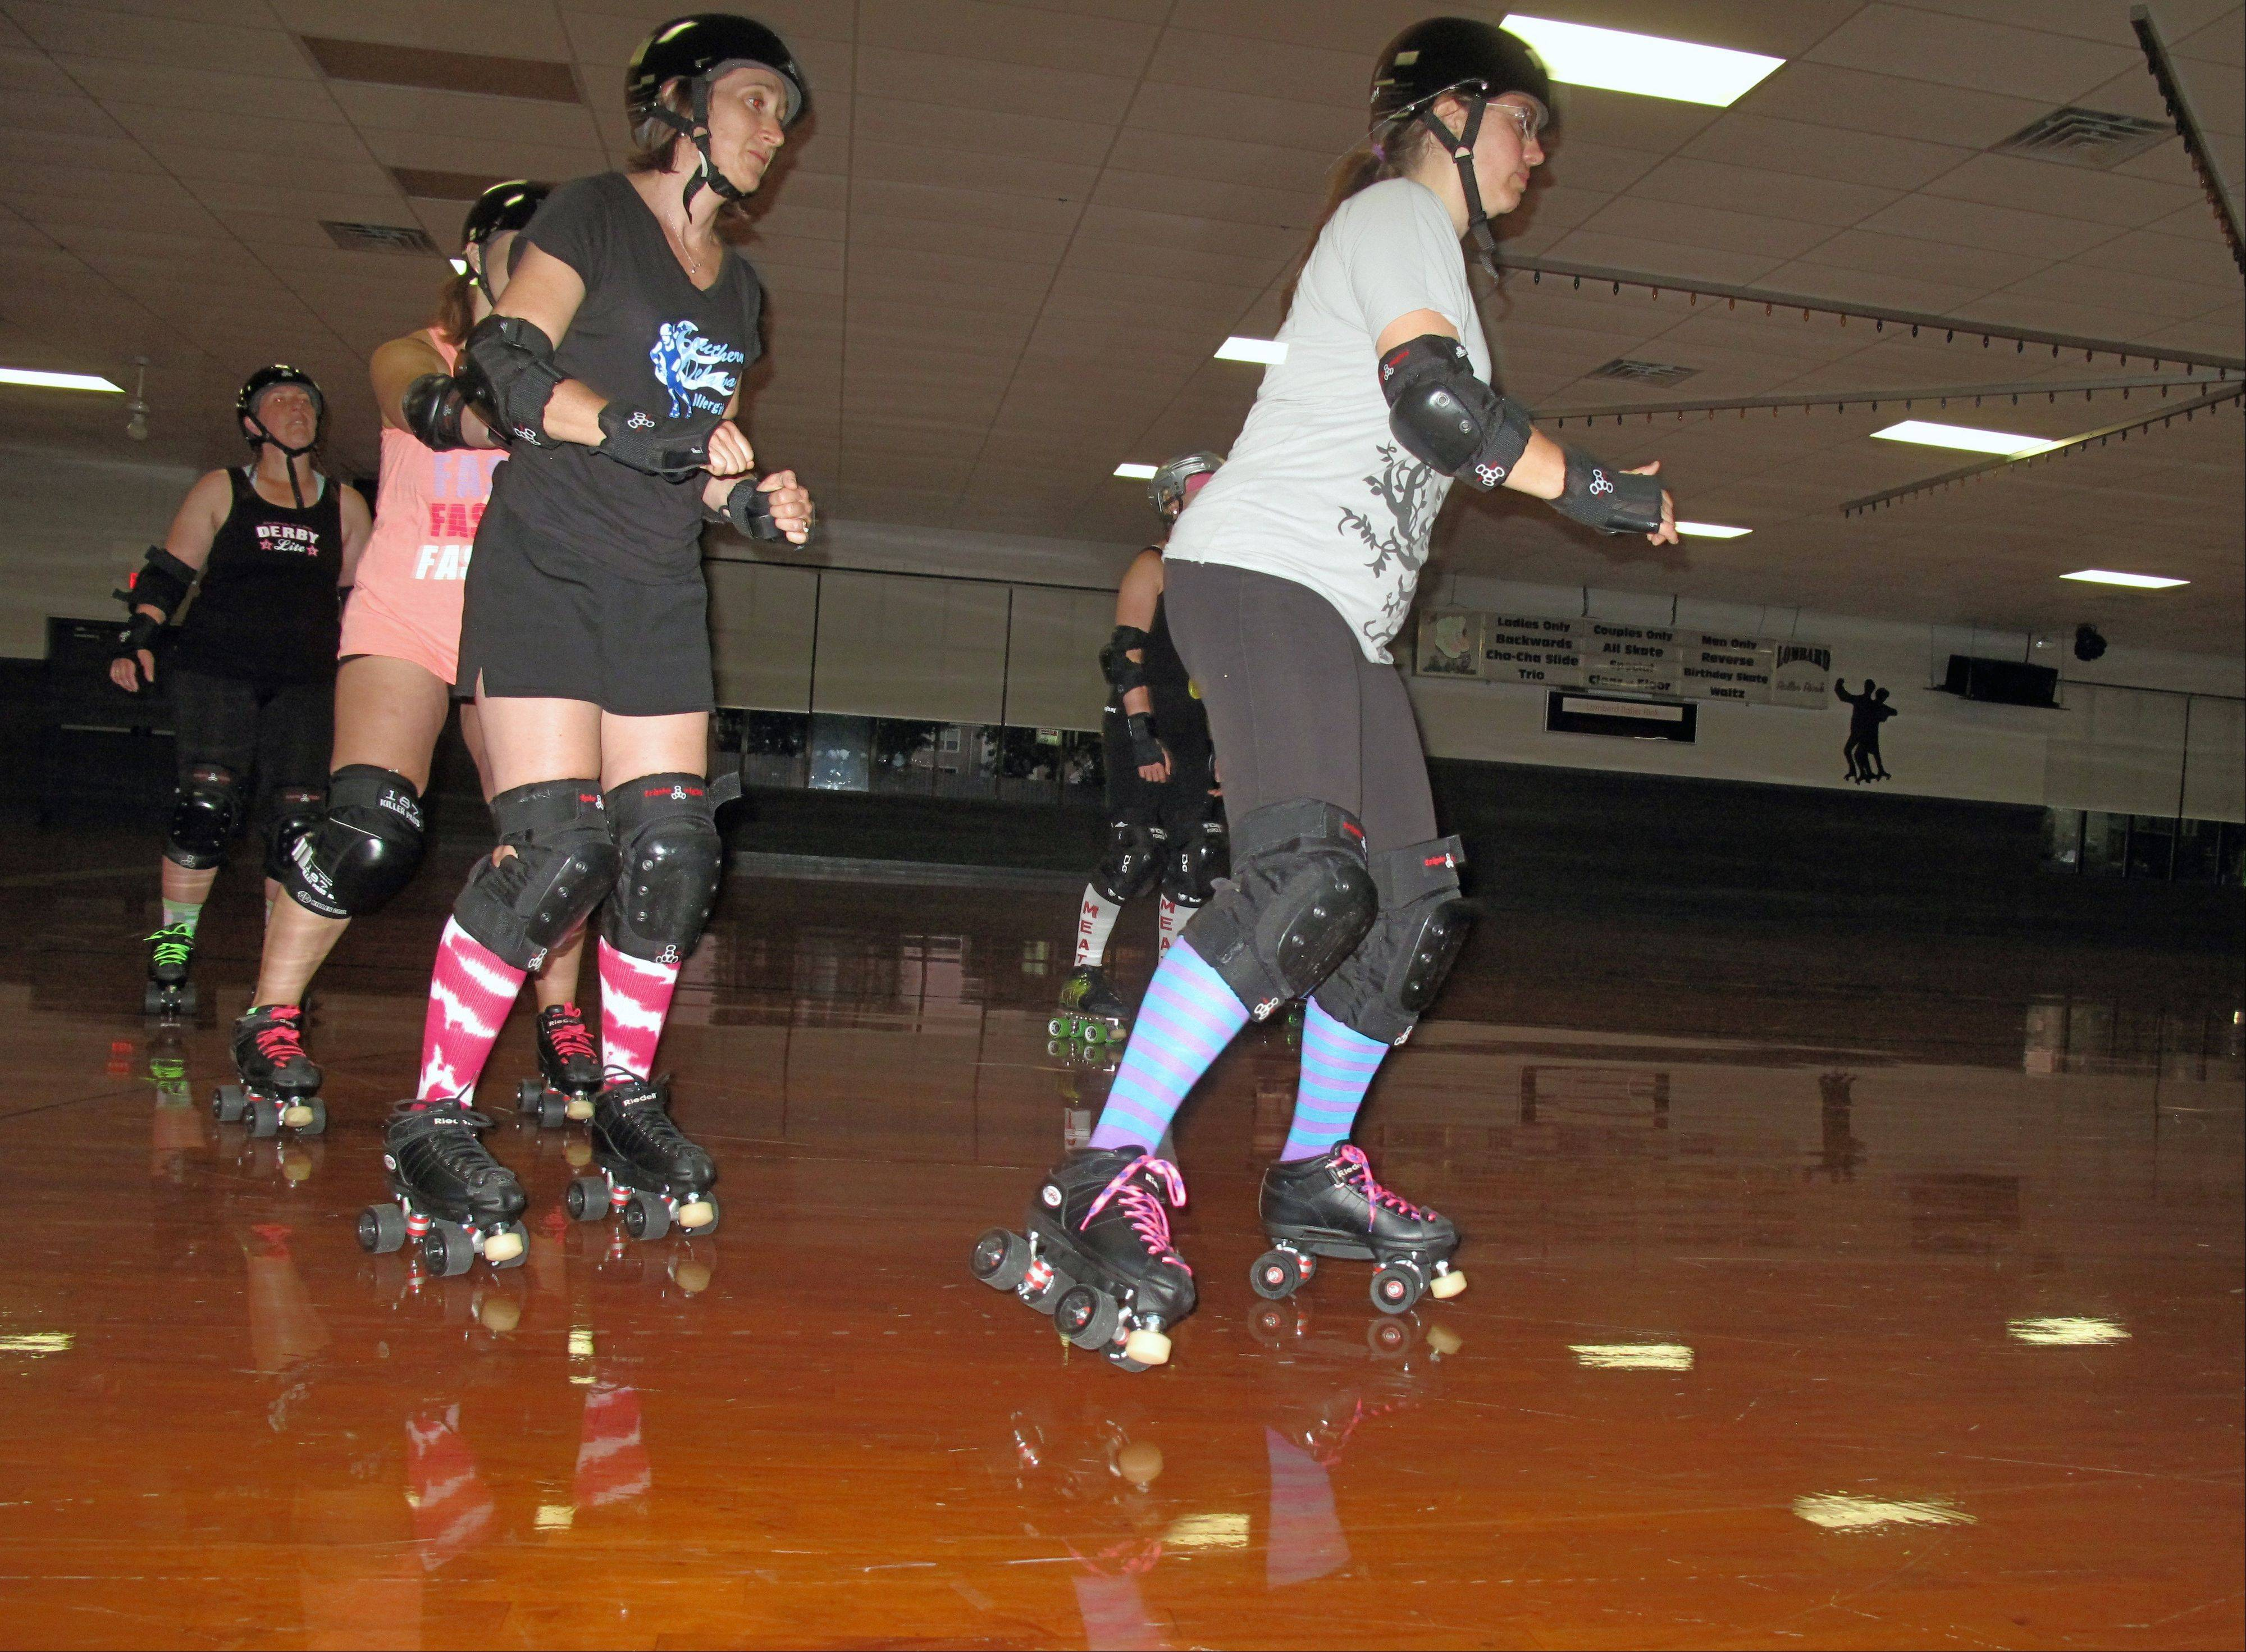 Derby Lite participants Meg Dudek of Frankfort and Melissa Monroe of Mokena lead a line of skaters during a recent fitness class. Derby Lite classes use the drills of classic women's roller derby — without the body-slamming contact — as the foundation for a workout.